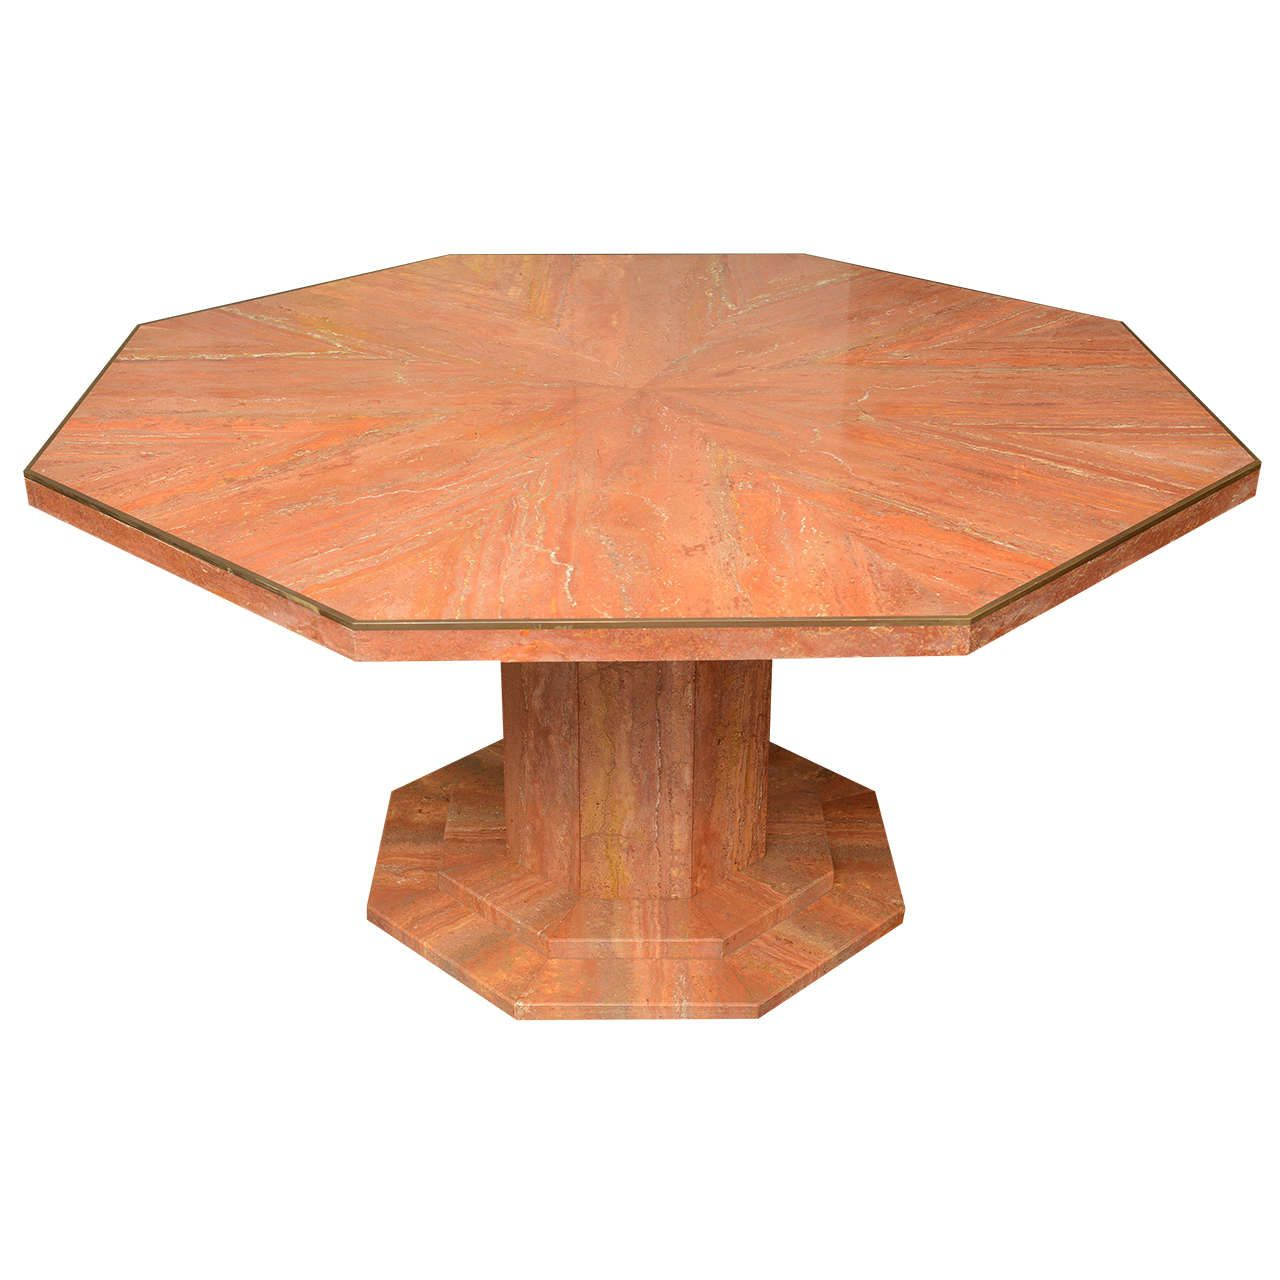 Octagonal Marble Dining Table From A Unique Collection Of Antique And Modern Dining Room Tables At Https